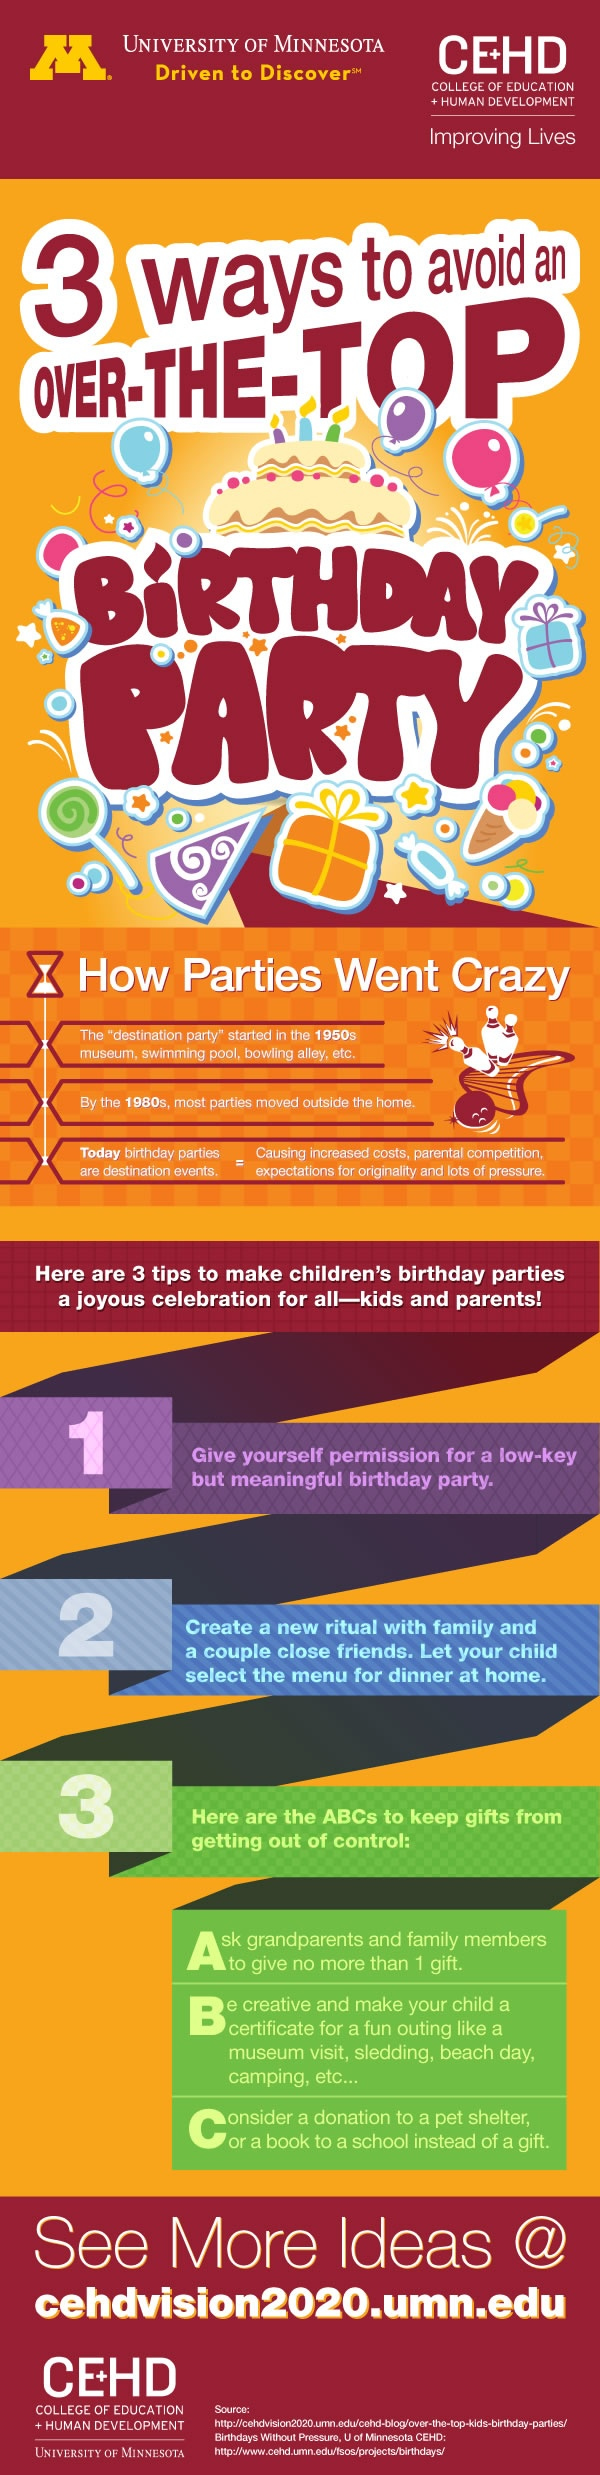 How to avoid an over-the-top birthday party